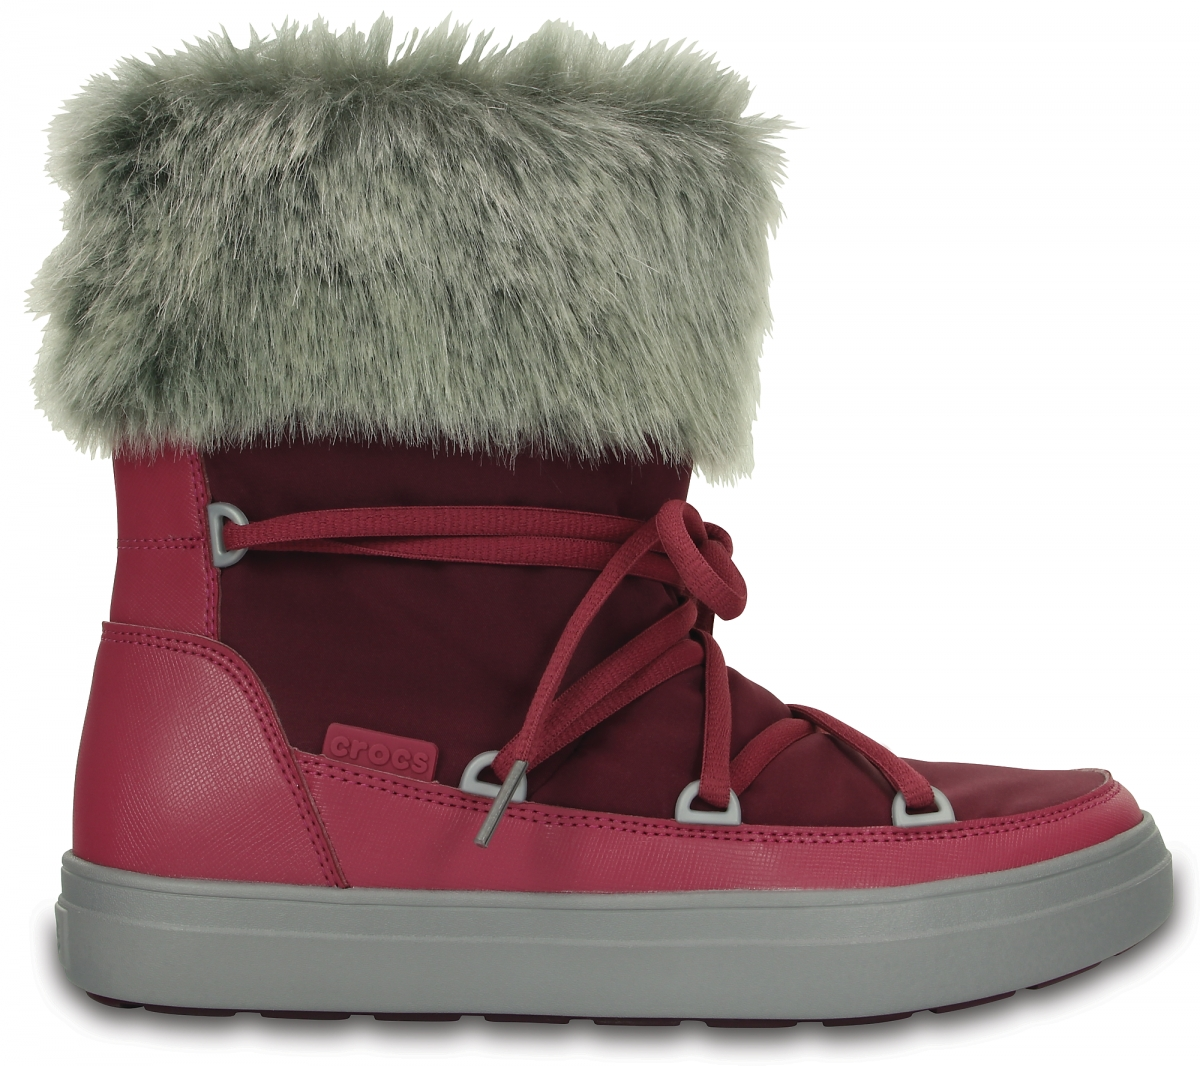 Crocs LodgePoint Lace Boot - Pomegranate, W7 (37-38)